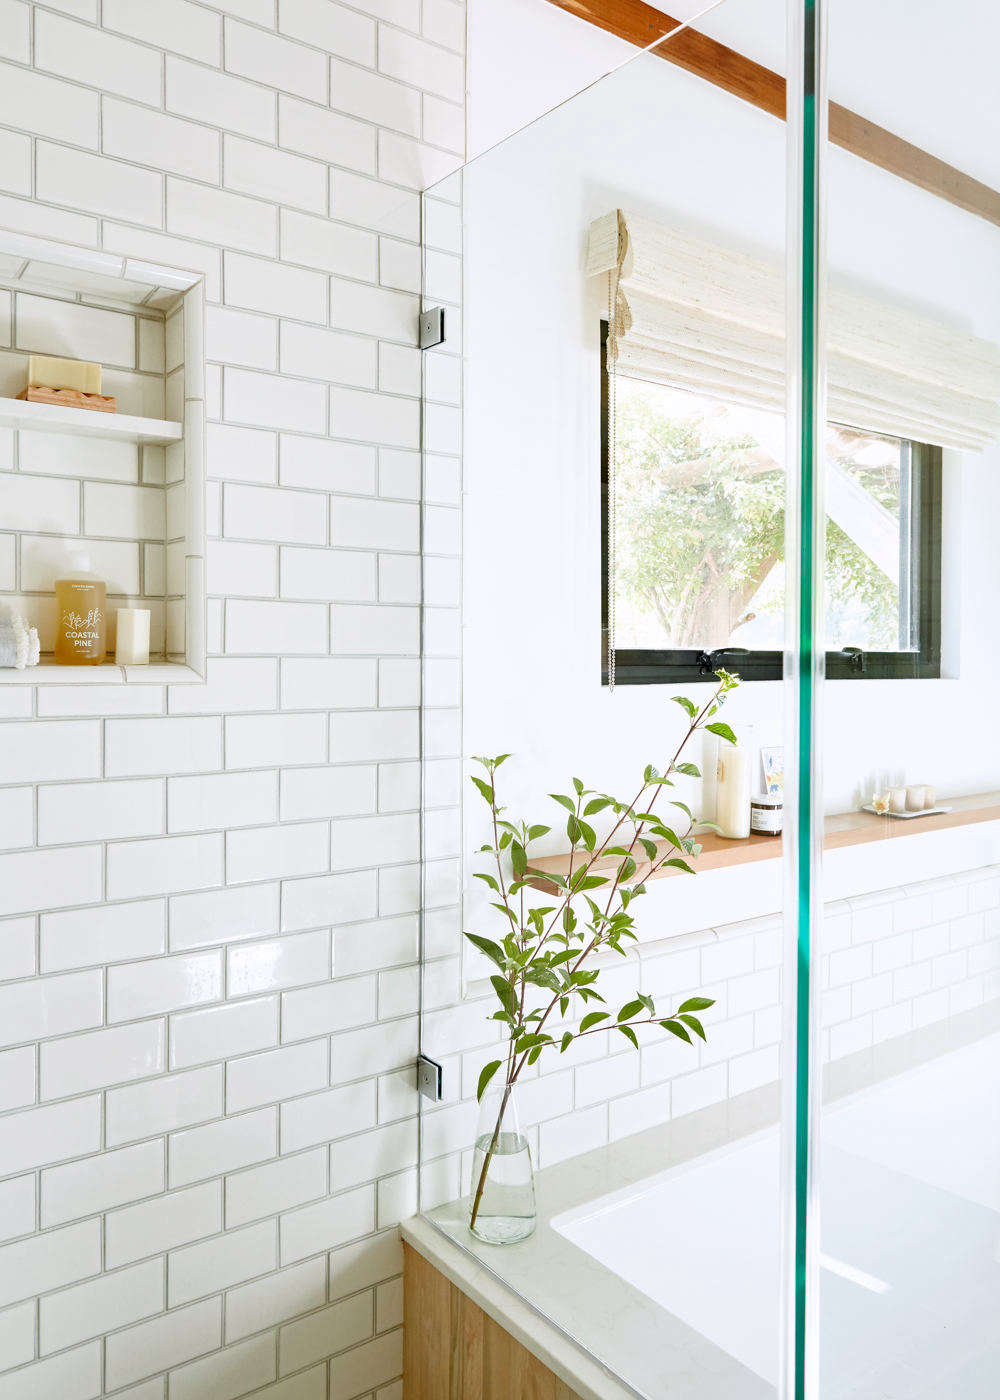 To bring more light into the bathroom, Lois installed a custom steel window from Bonelli, a San Francisco window manufacturer. The Roman shade is from The Shade Store.